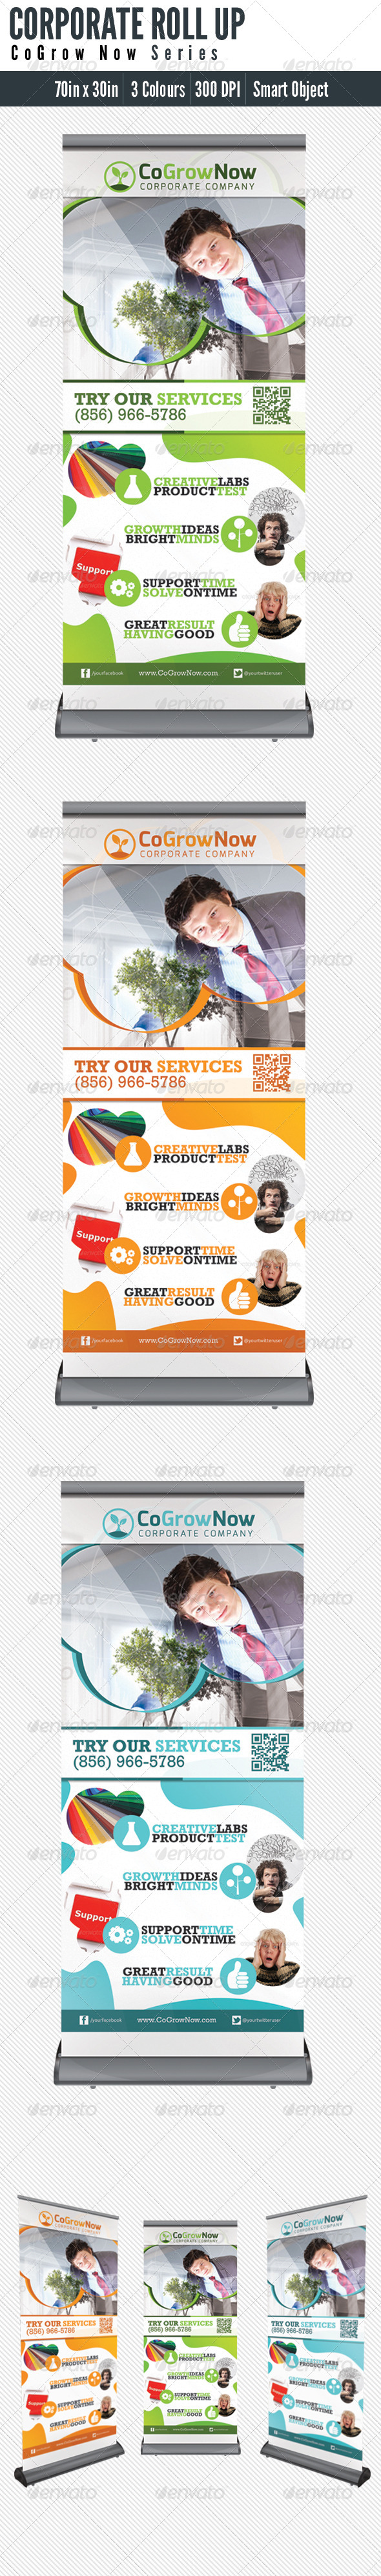 Roll Up Banner Corporate - Signage Print Templates